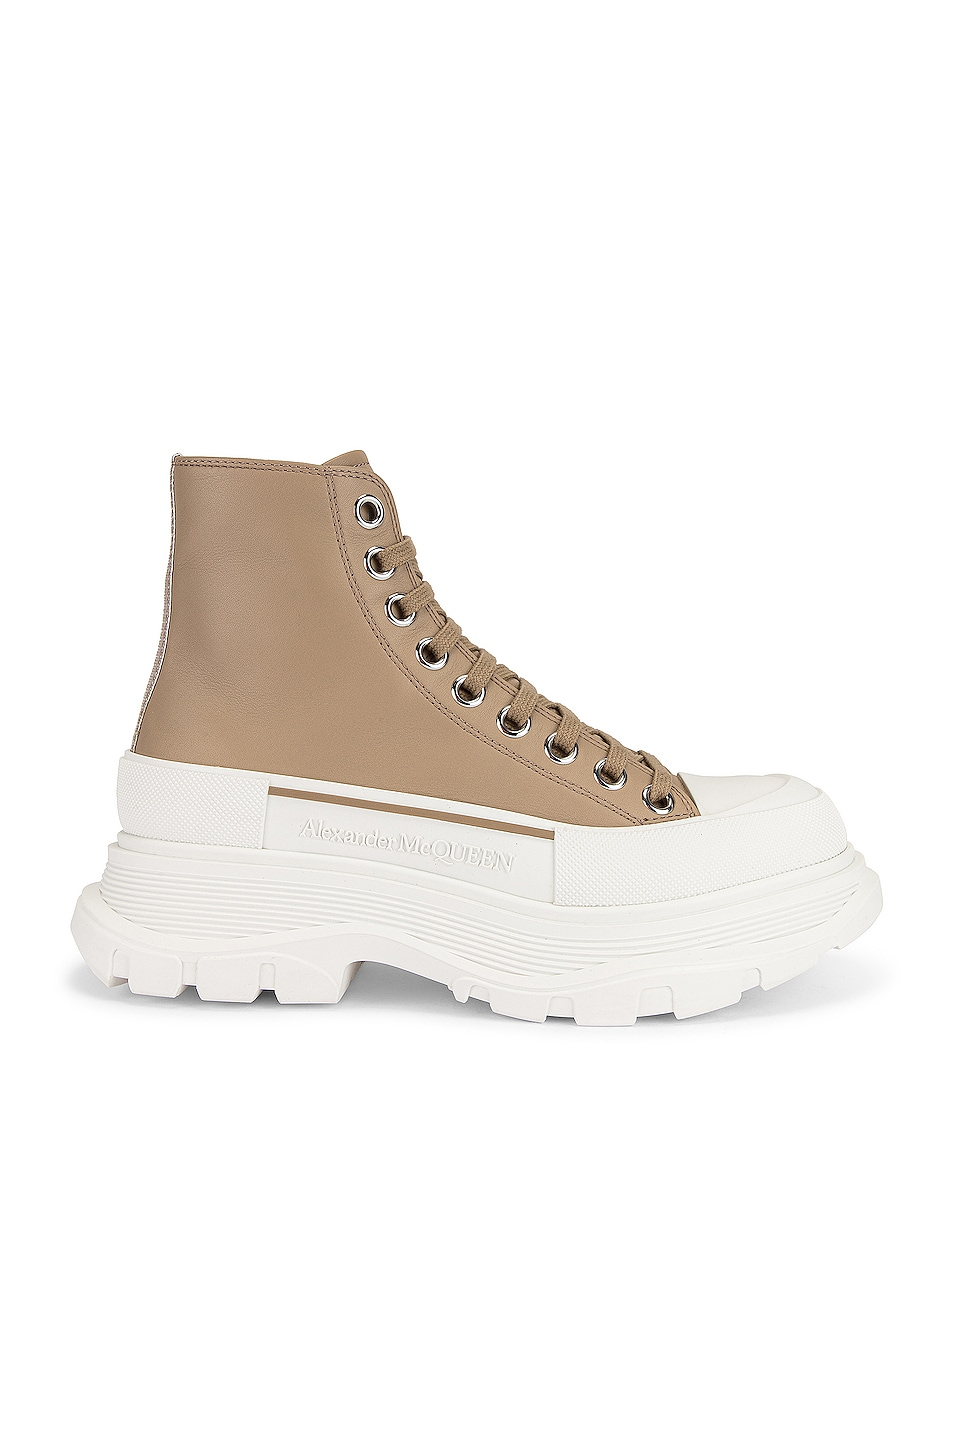 Image 1 of Alexander McQueen Lace Up Tread Slick High Top Sneakers in Camel & White